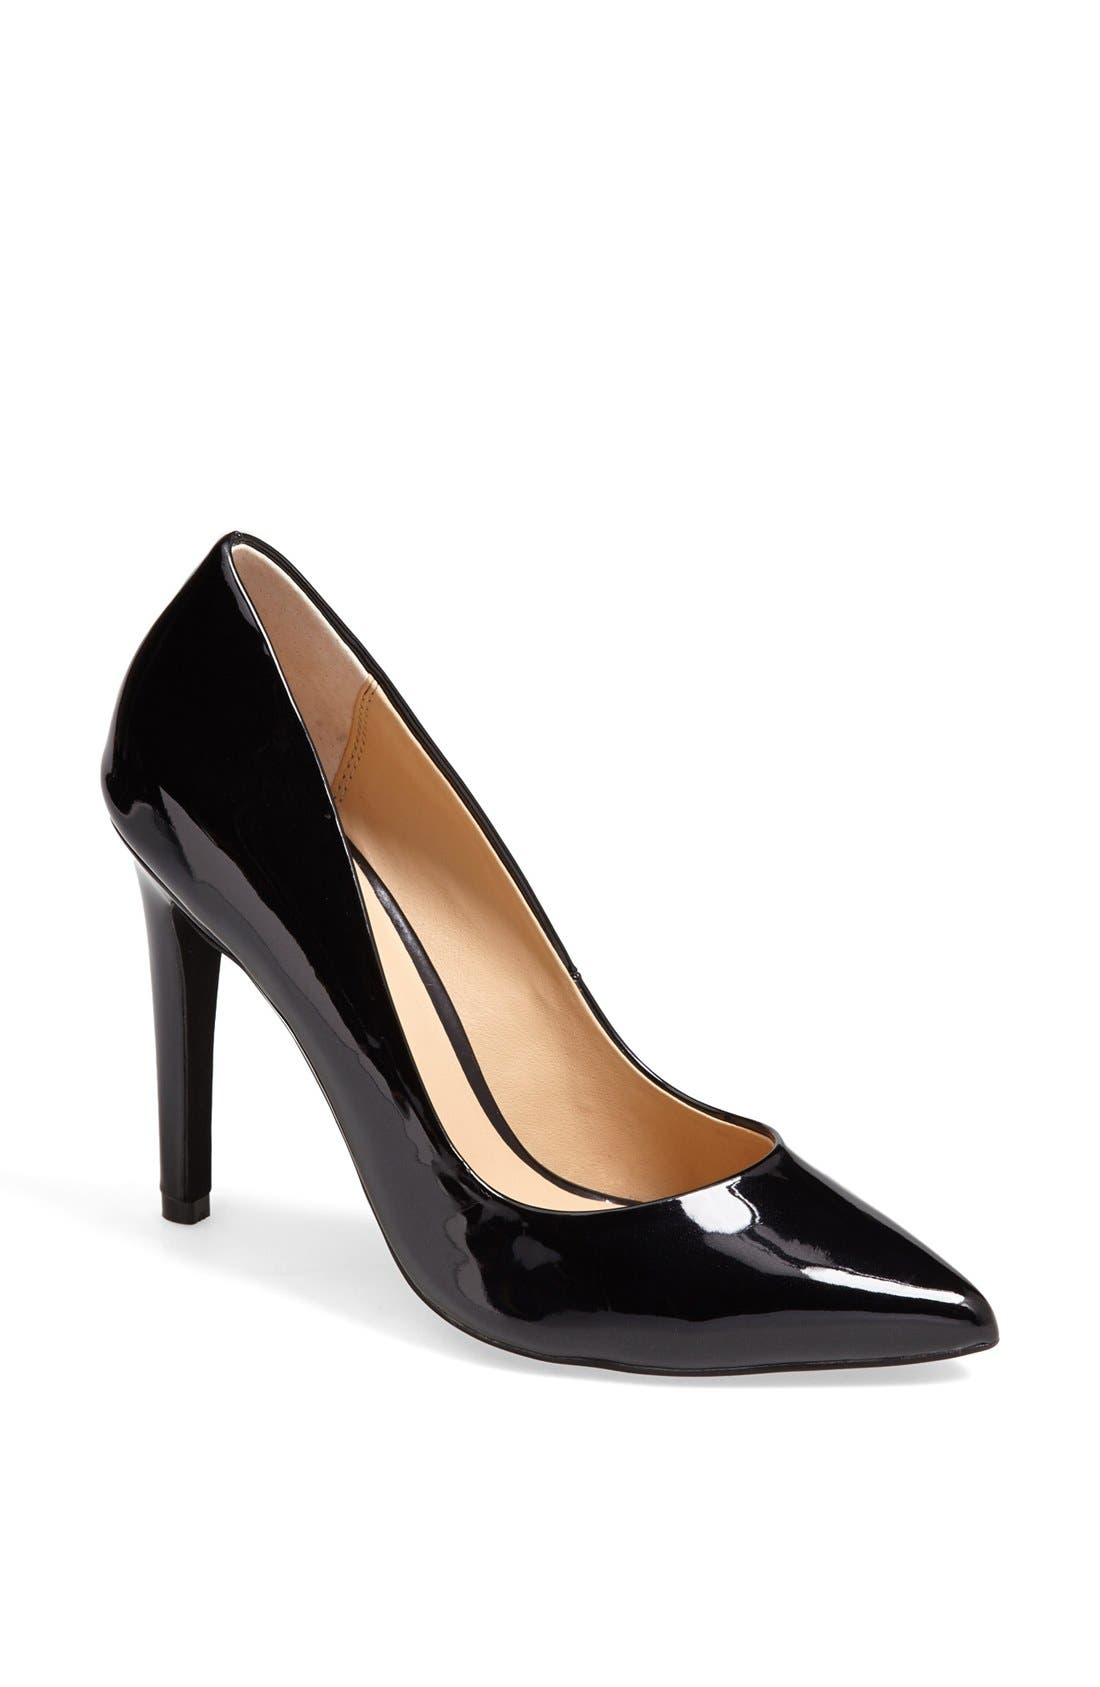 Main Image - Joe's 'Erika' Patent Leather Pointy Toe Pump